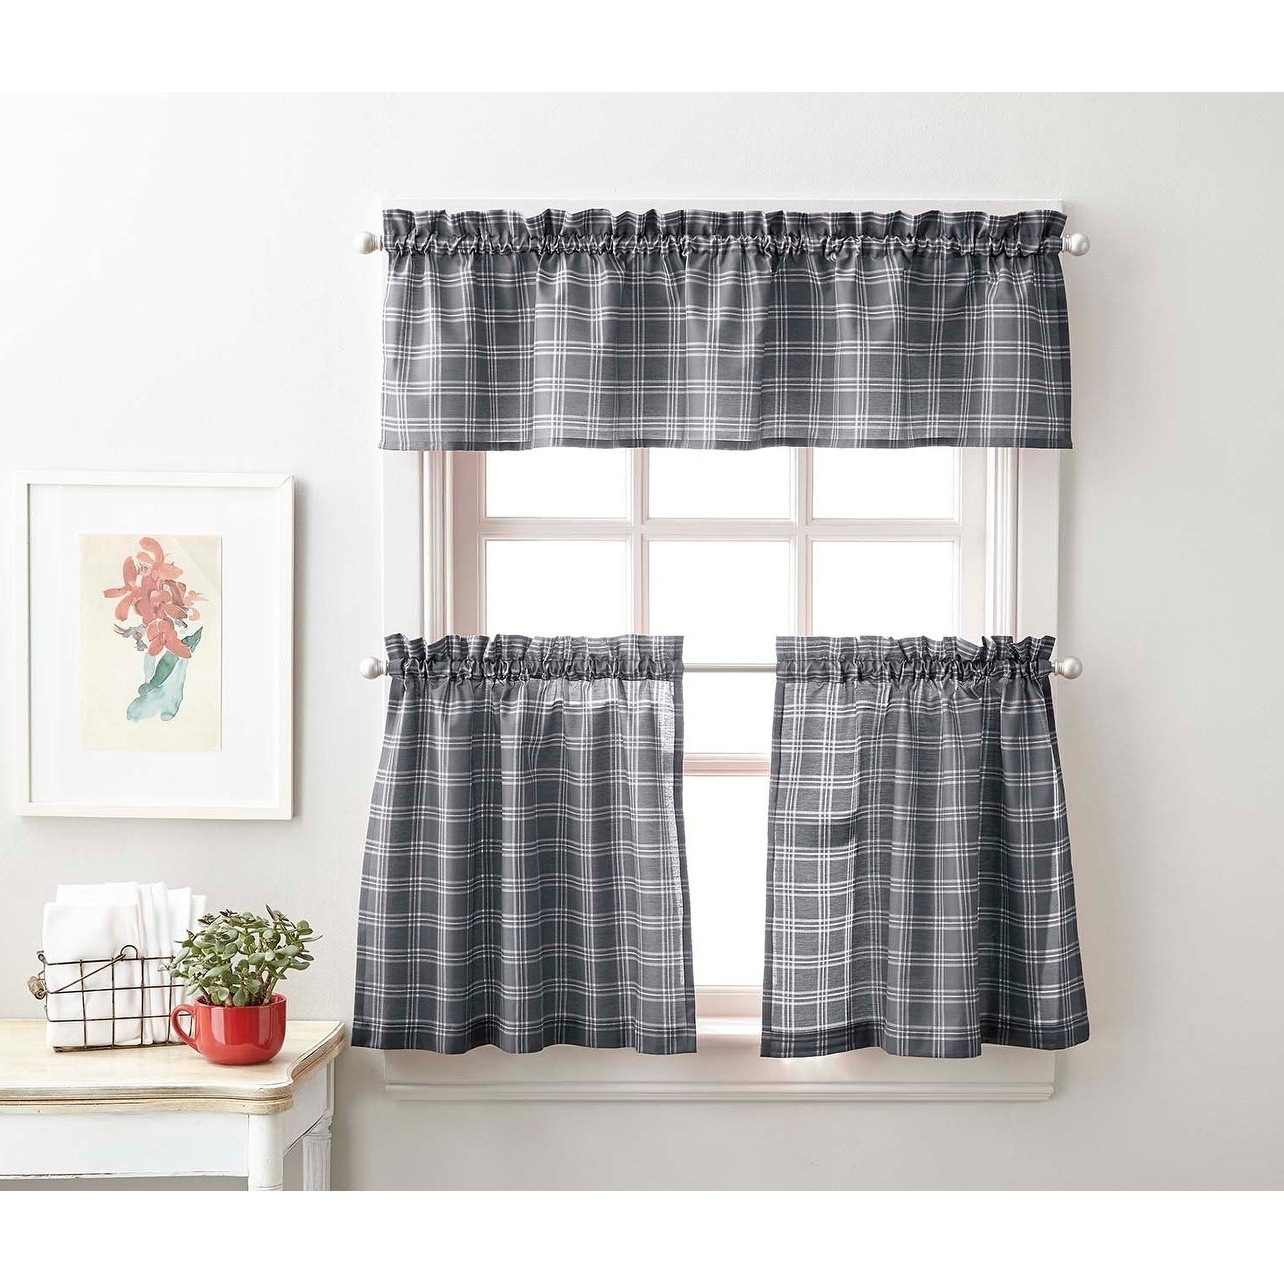 Details About Lodge Plaid 3 Piece Kitchen Curtain Tier And Valance Set – For Well Known Delicious Apples Kitchen Curtain Tier And Valance Sets (View 11 of 20)